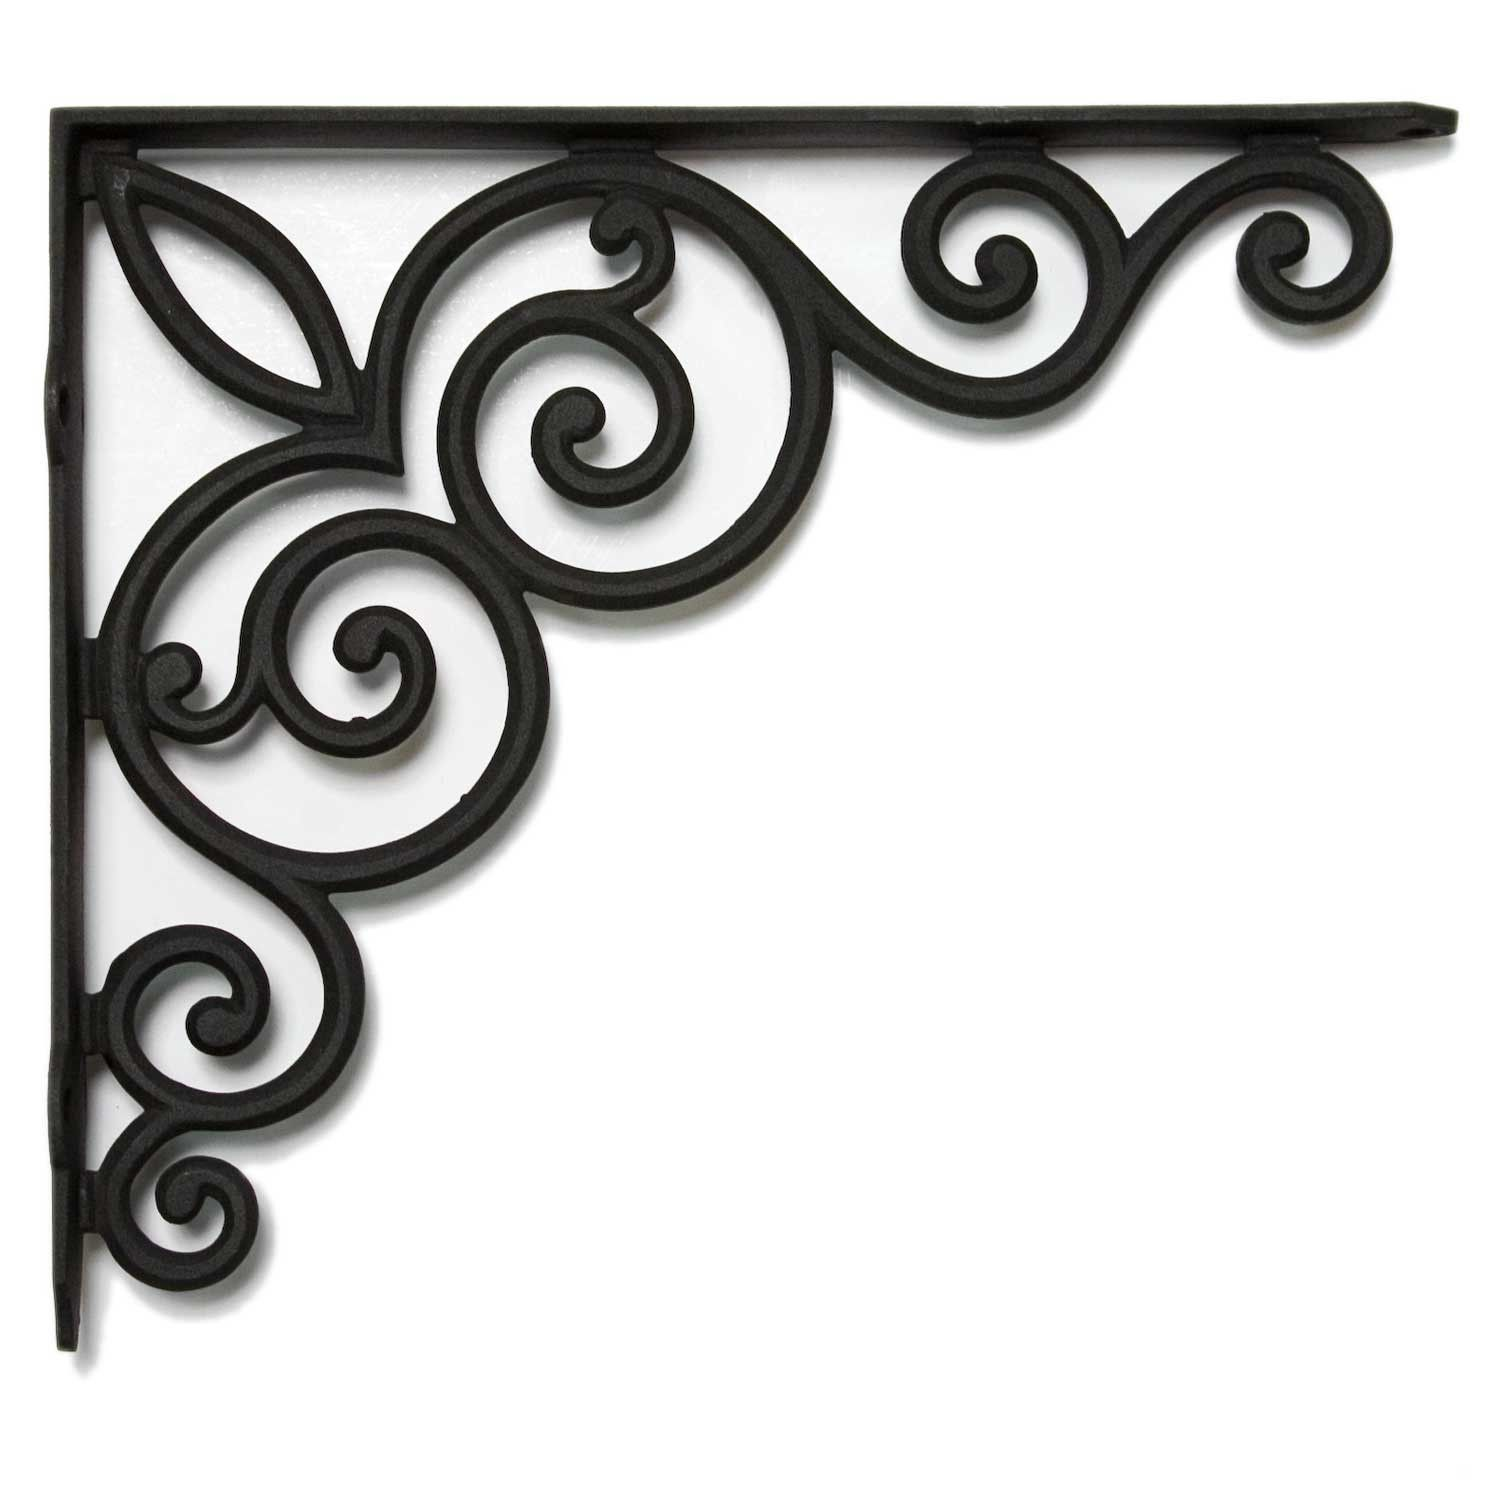 VINTAGE-STYLE CAST IRON BRACKET Scroll TUSCAN Wrought ORNATE ...